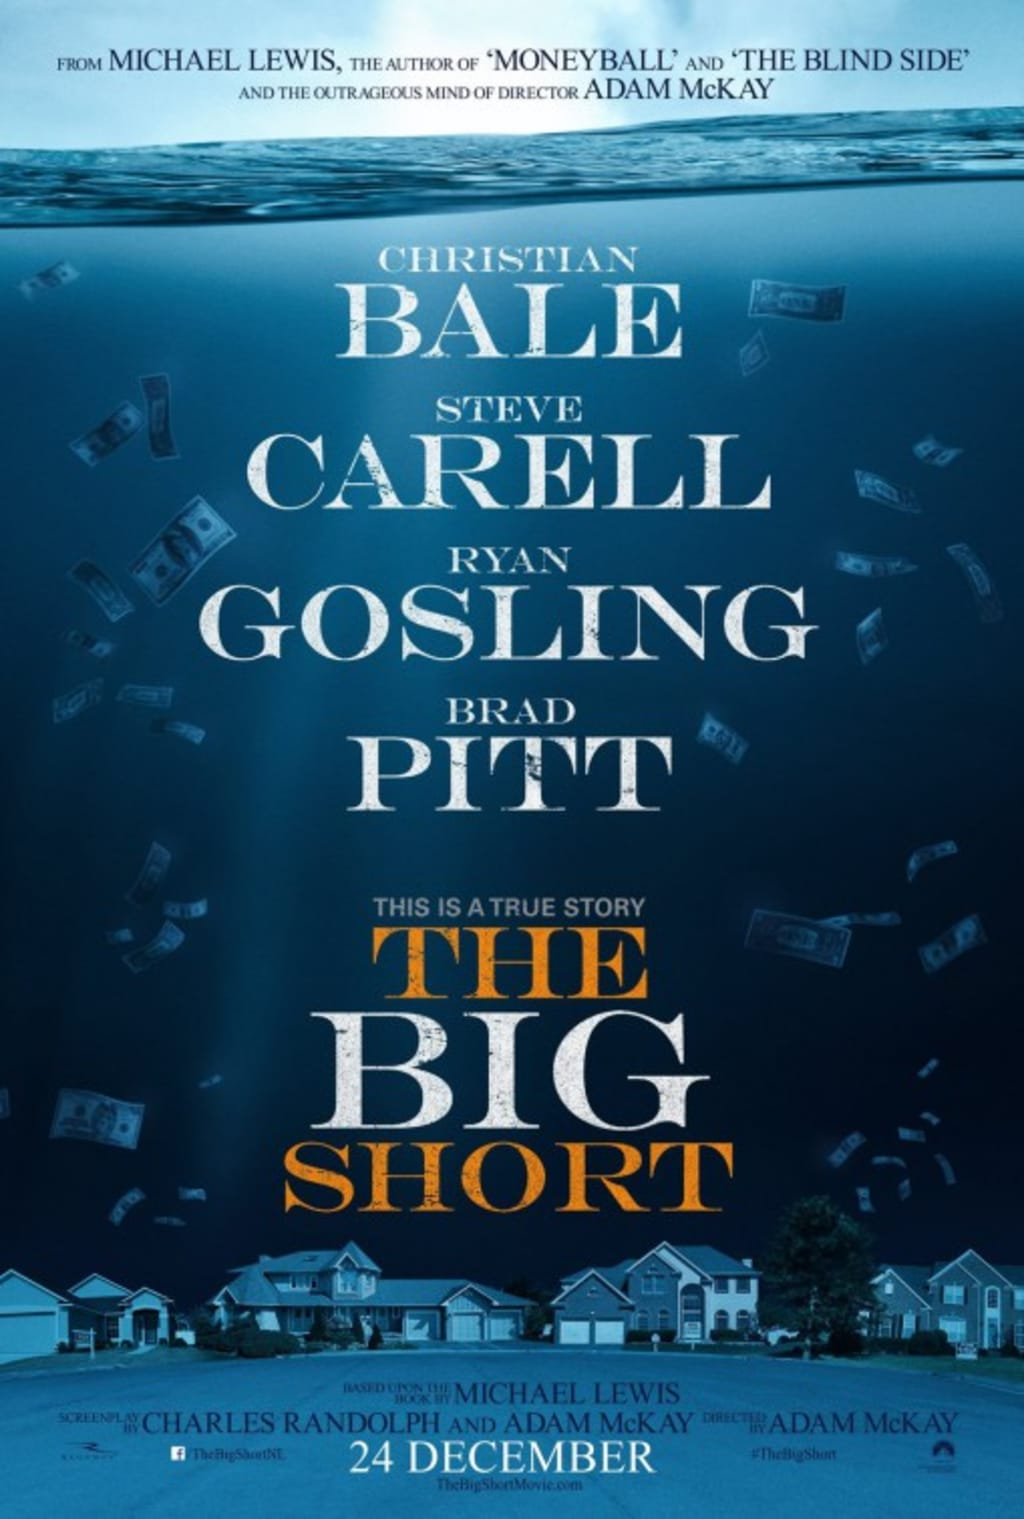 In The Big Short, 2008 Economic Crisis Had Winners Who Didn't Break the Law